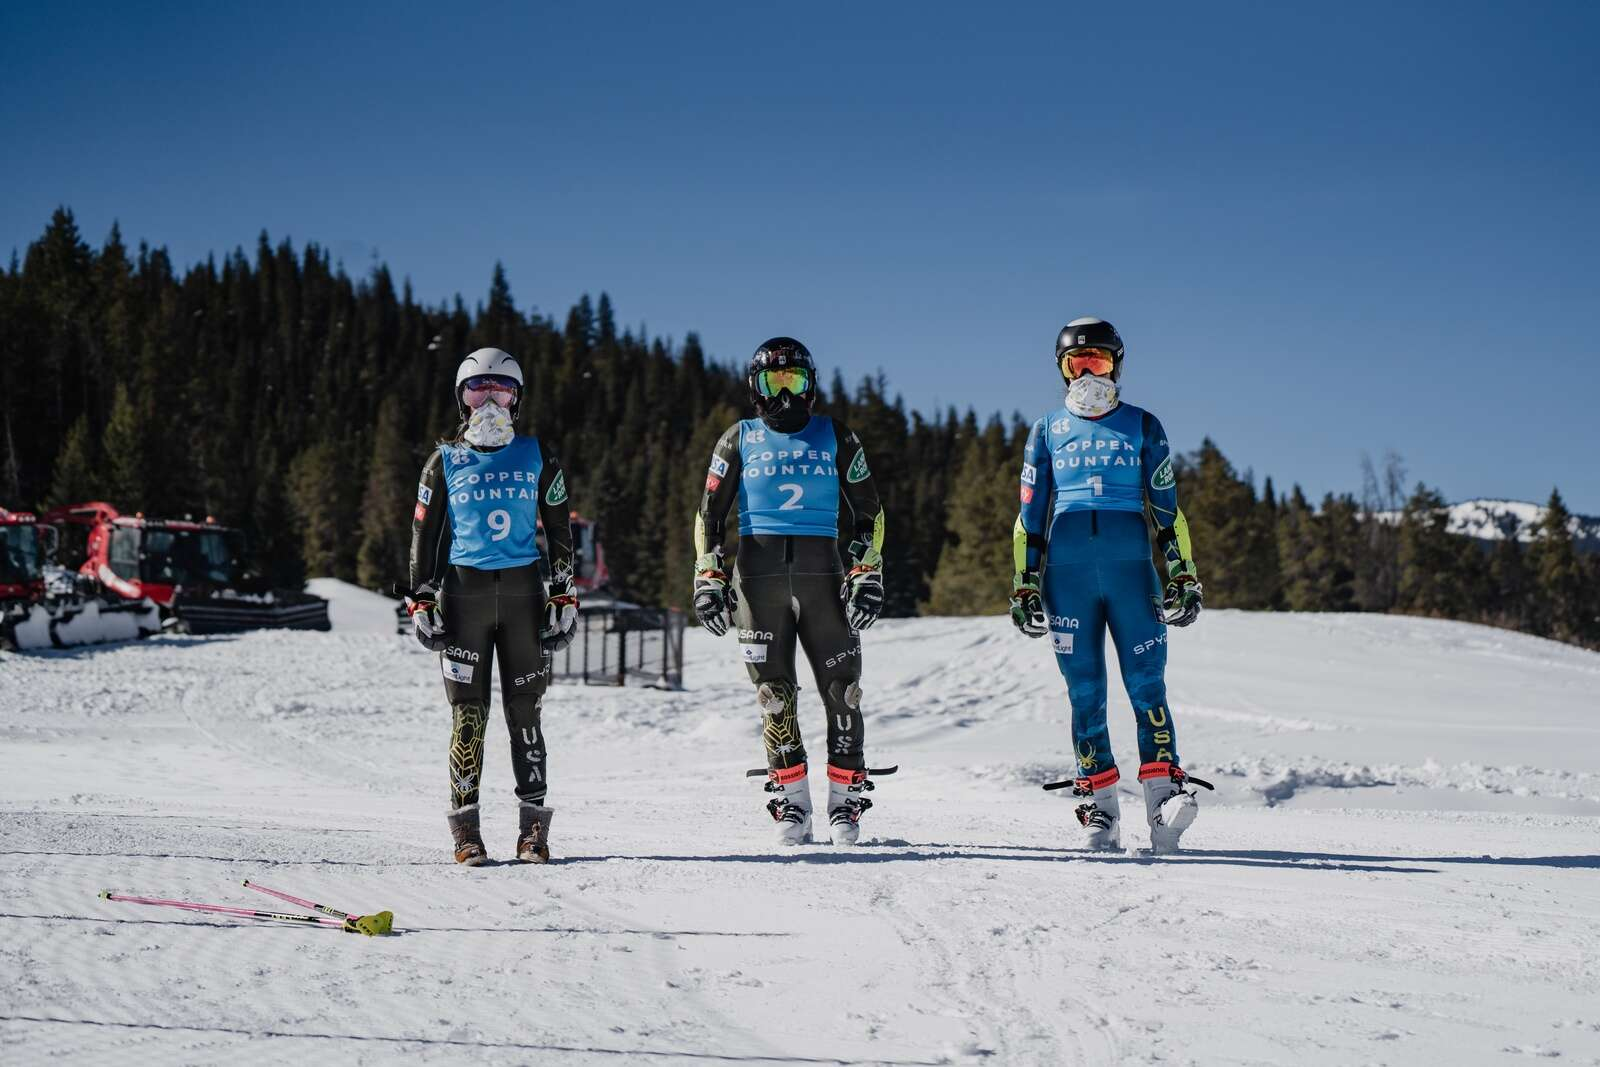 U.S. Alpine skiers physically distance at the U.S. Alpine Ski Championships at Copper Mountain Resort earlier this week. The event was a replacement for a spring 2020 national championships that was canceled due to the novel coronavirus. | Photo by Max Hall / U.S. Ski & Snowboard